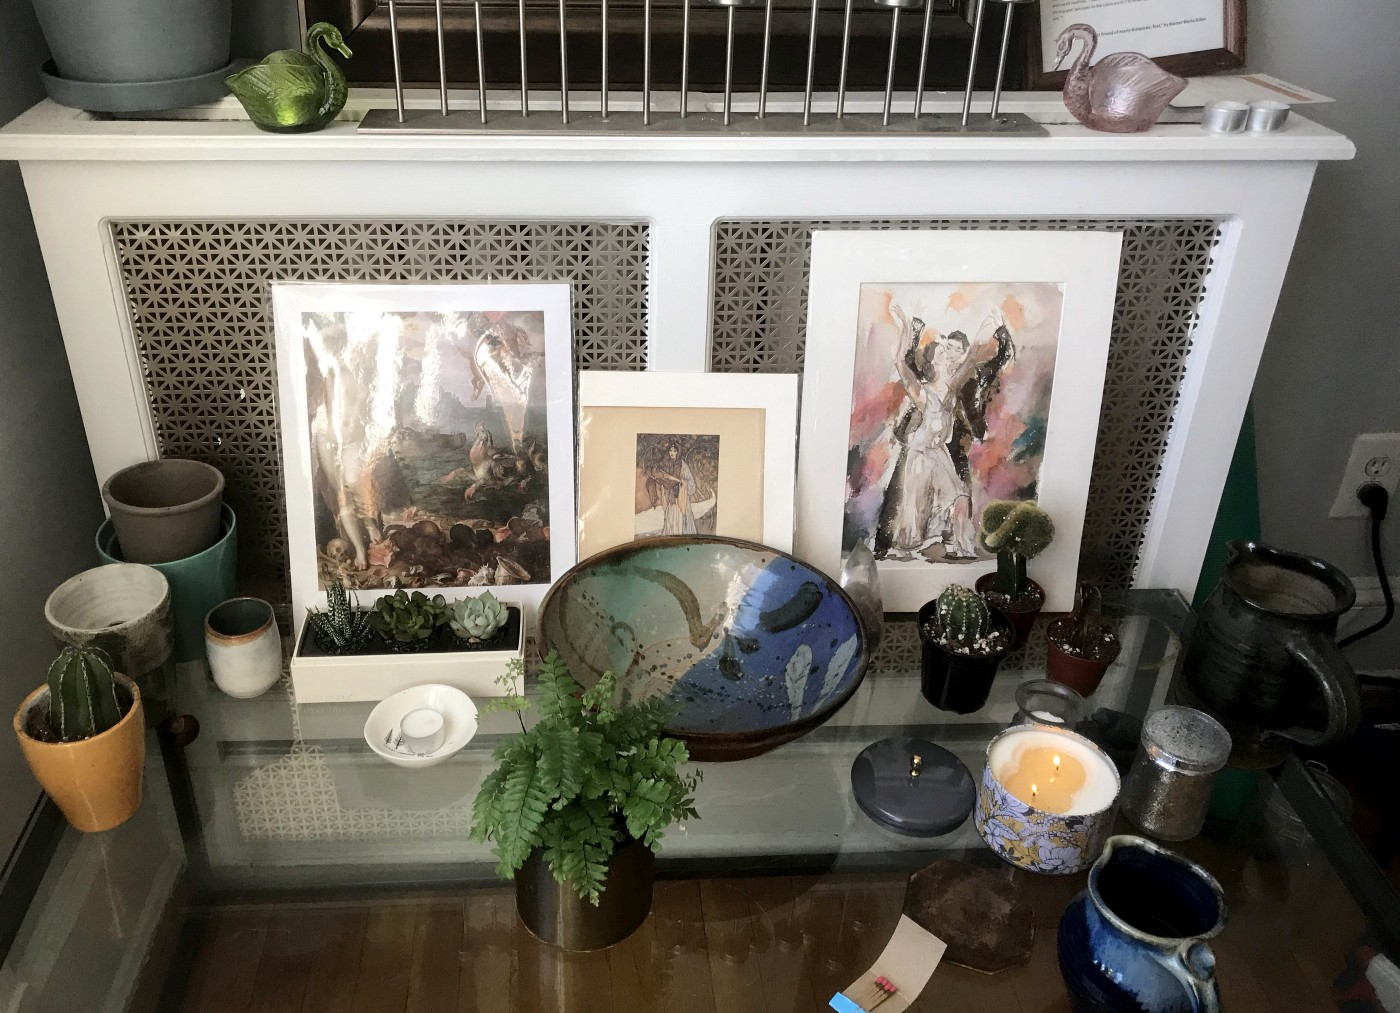 A random assortment of art, plants and candles, created as part of the pandemic. Photo by author.